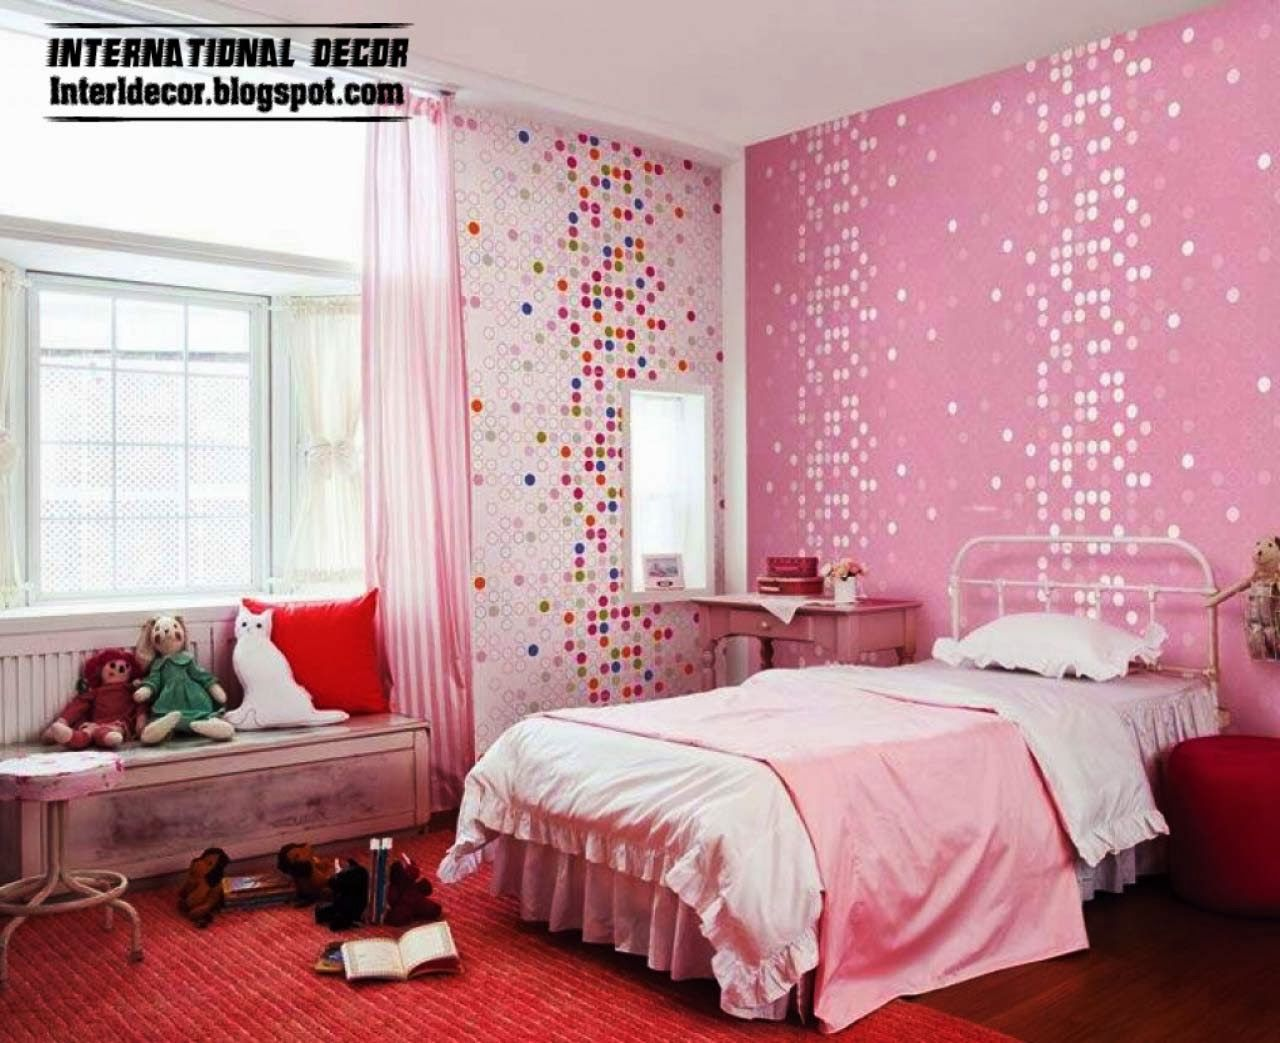 Bedroom Houses Ideas 2014 Pink Girls Bedroom Ideas 2014 Modern Girls Room Pink I Love The Bac Pink Bedroom Design Girl Bedroom Decor Girls Bedroom Wallpaper